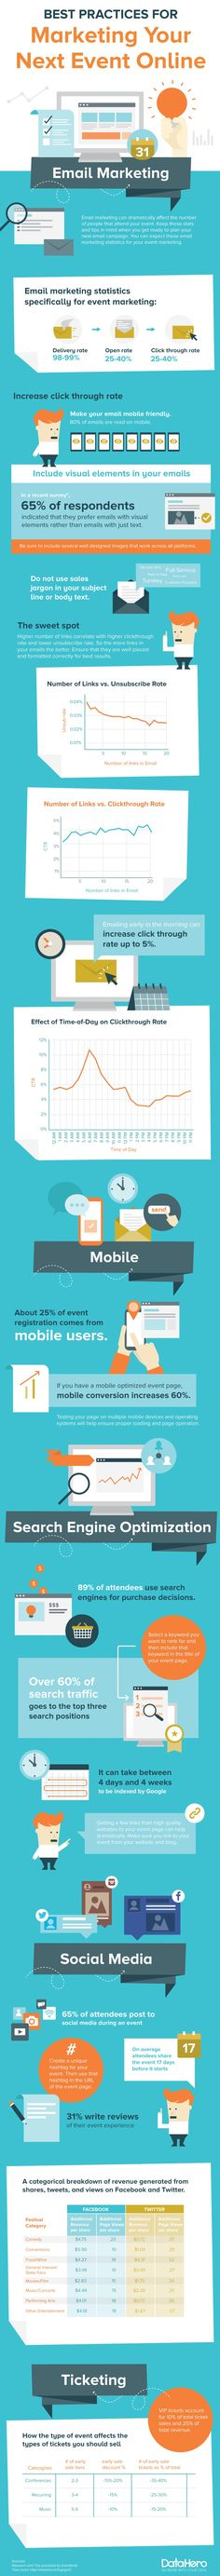 Infographic: Best Practices for Marketing Your Next Event Online - @visualistan